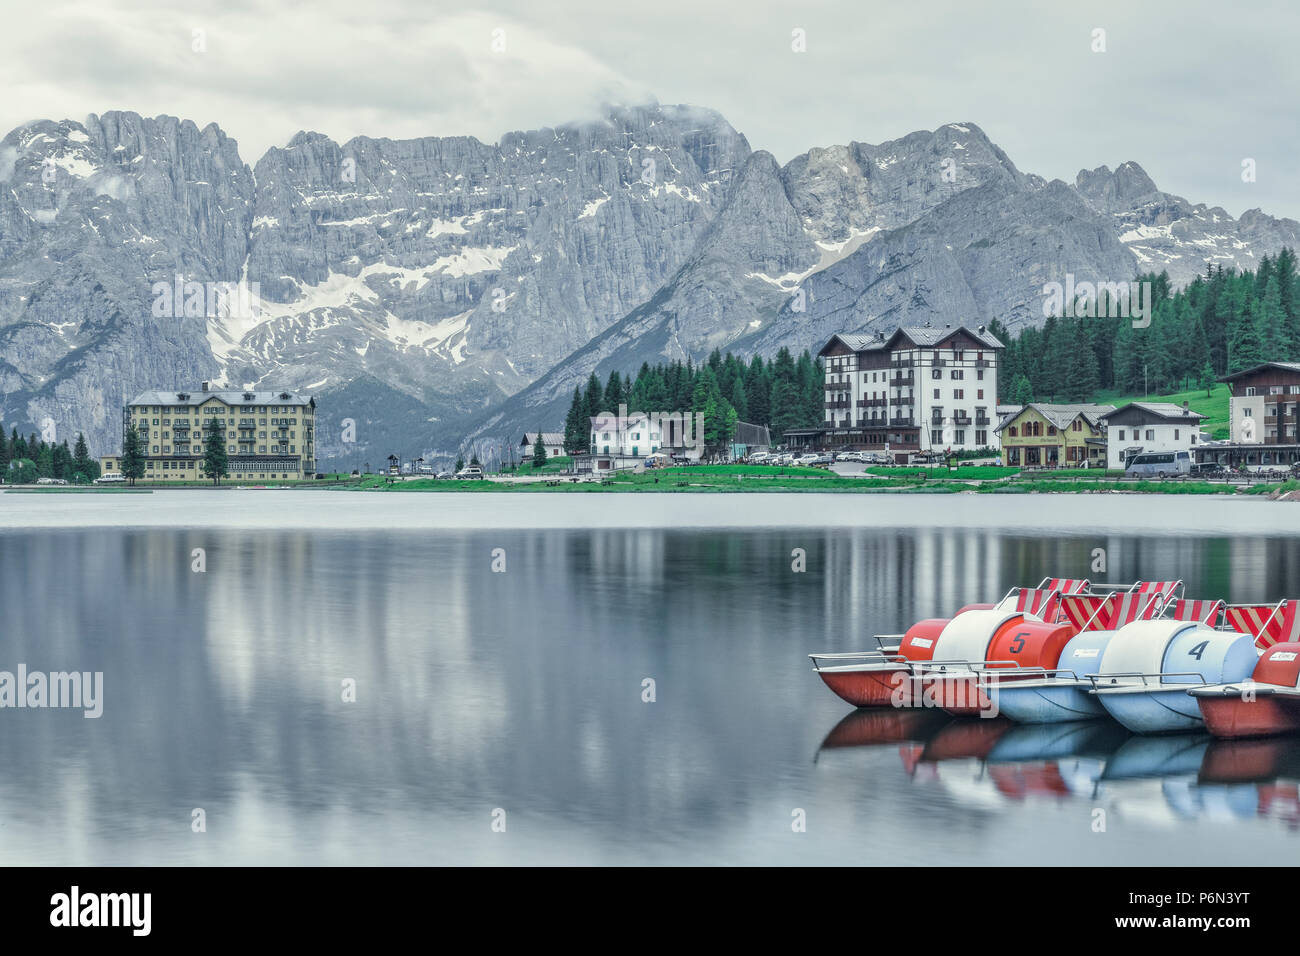 Lake Misurina, Belluno, Veneto, Dolomites, Italy, Europe - Stock Image